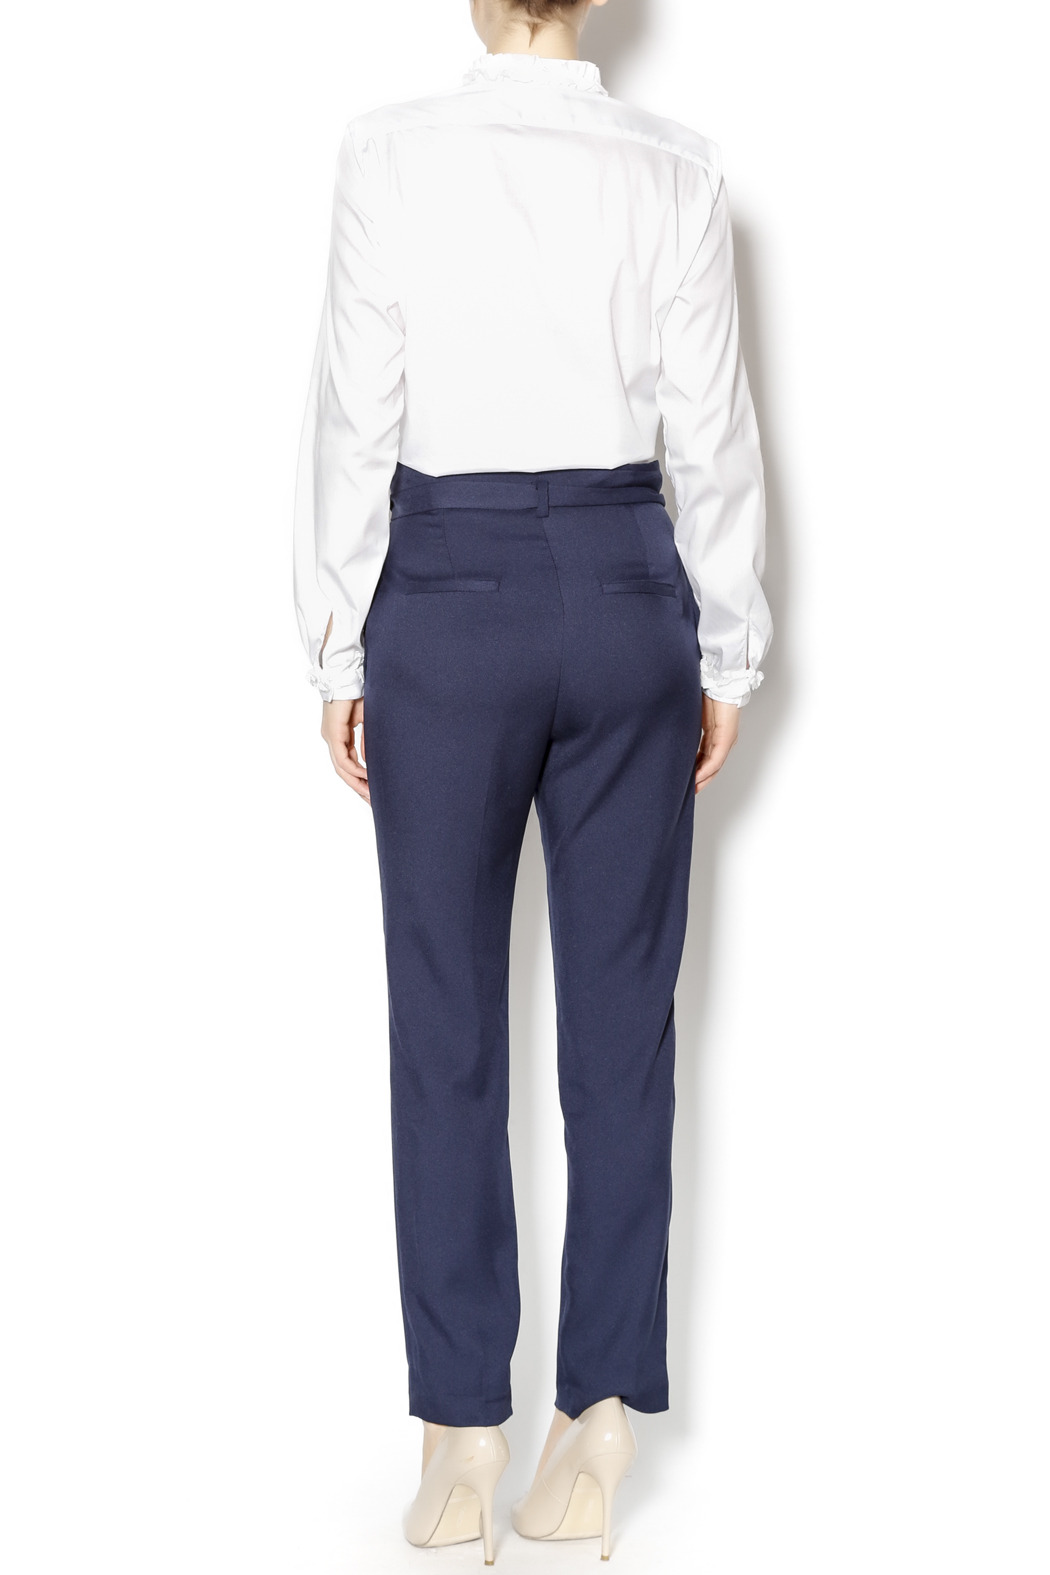 Pinkyotto Navy High Waisted Tie Pants - Side Cropped Image